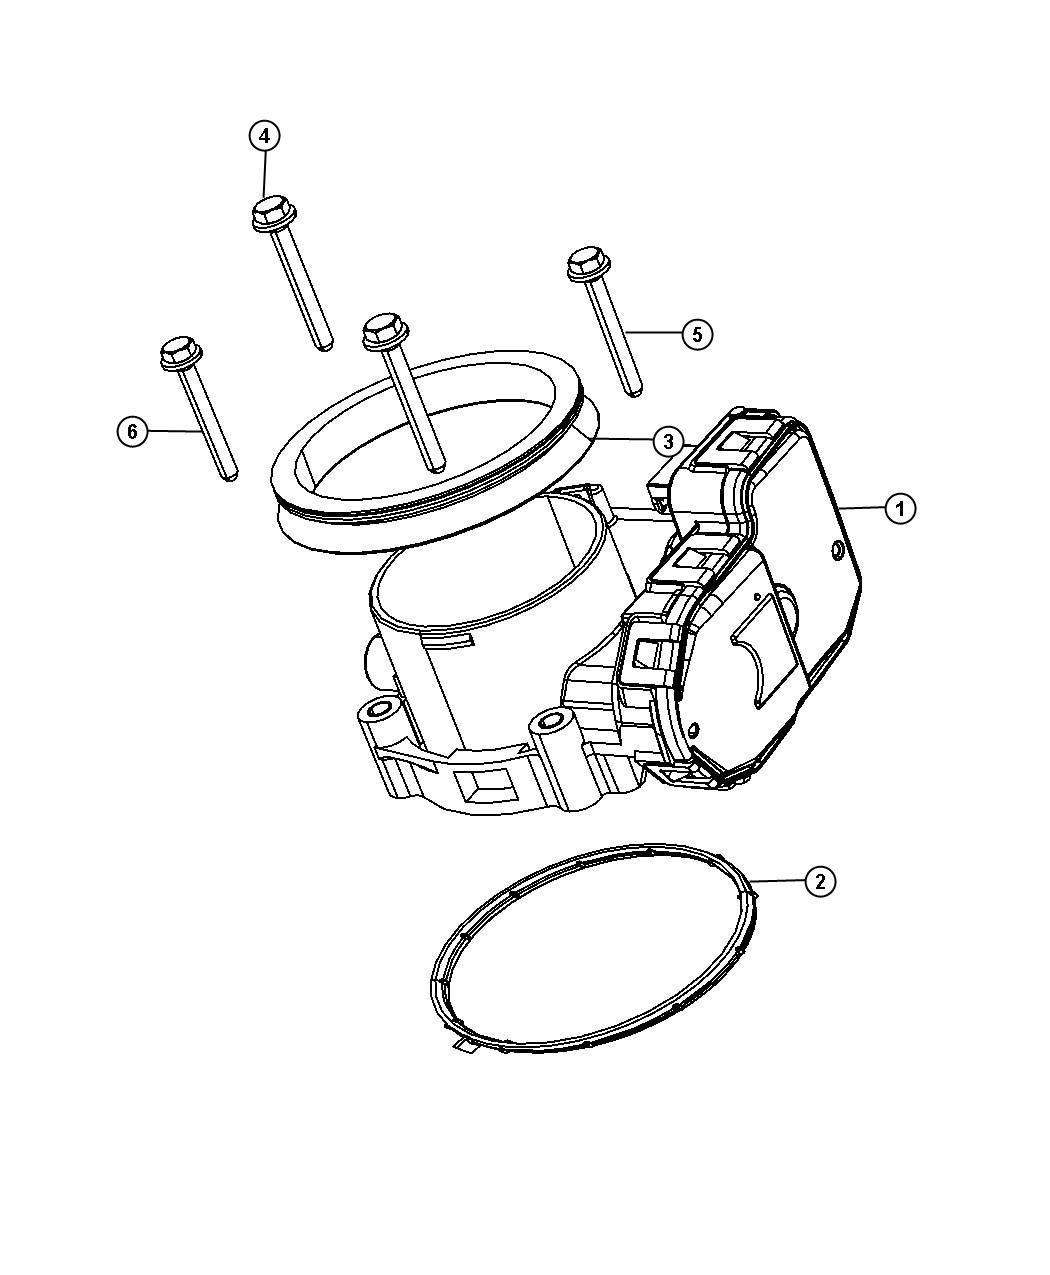 Dodge Ram Throttle Body 7 26 04 And After Ekg